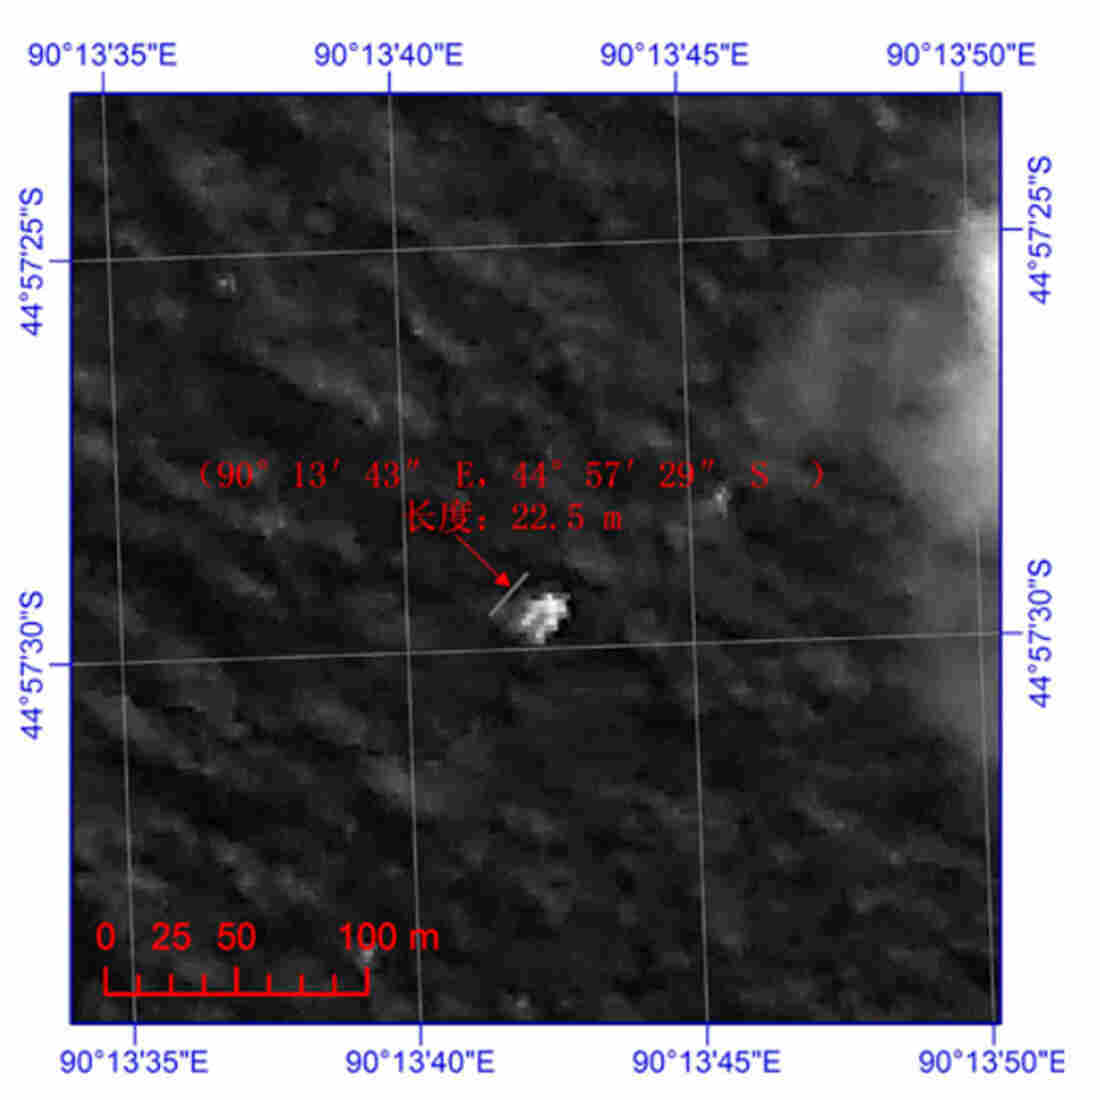 This satellite image, taken on March 18, has intensified the search for Malaysia Airlines Flight 370 in the Indian Ocean about 1,500 miles southwest of Perth, Australia. The image was released Saturday by Chinese authorities.